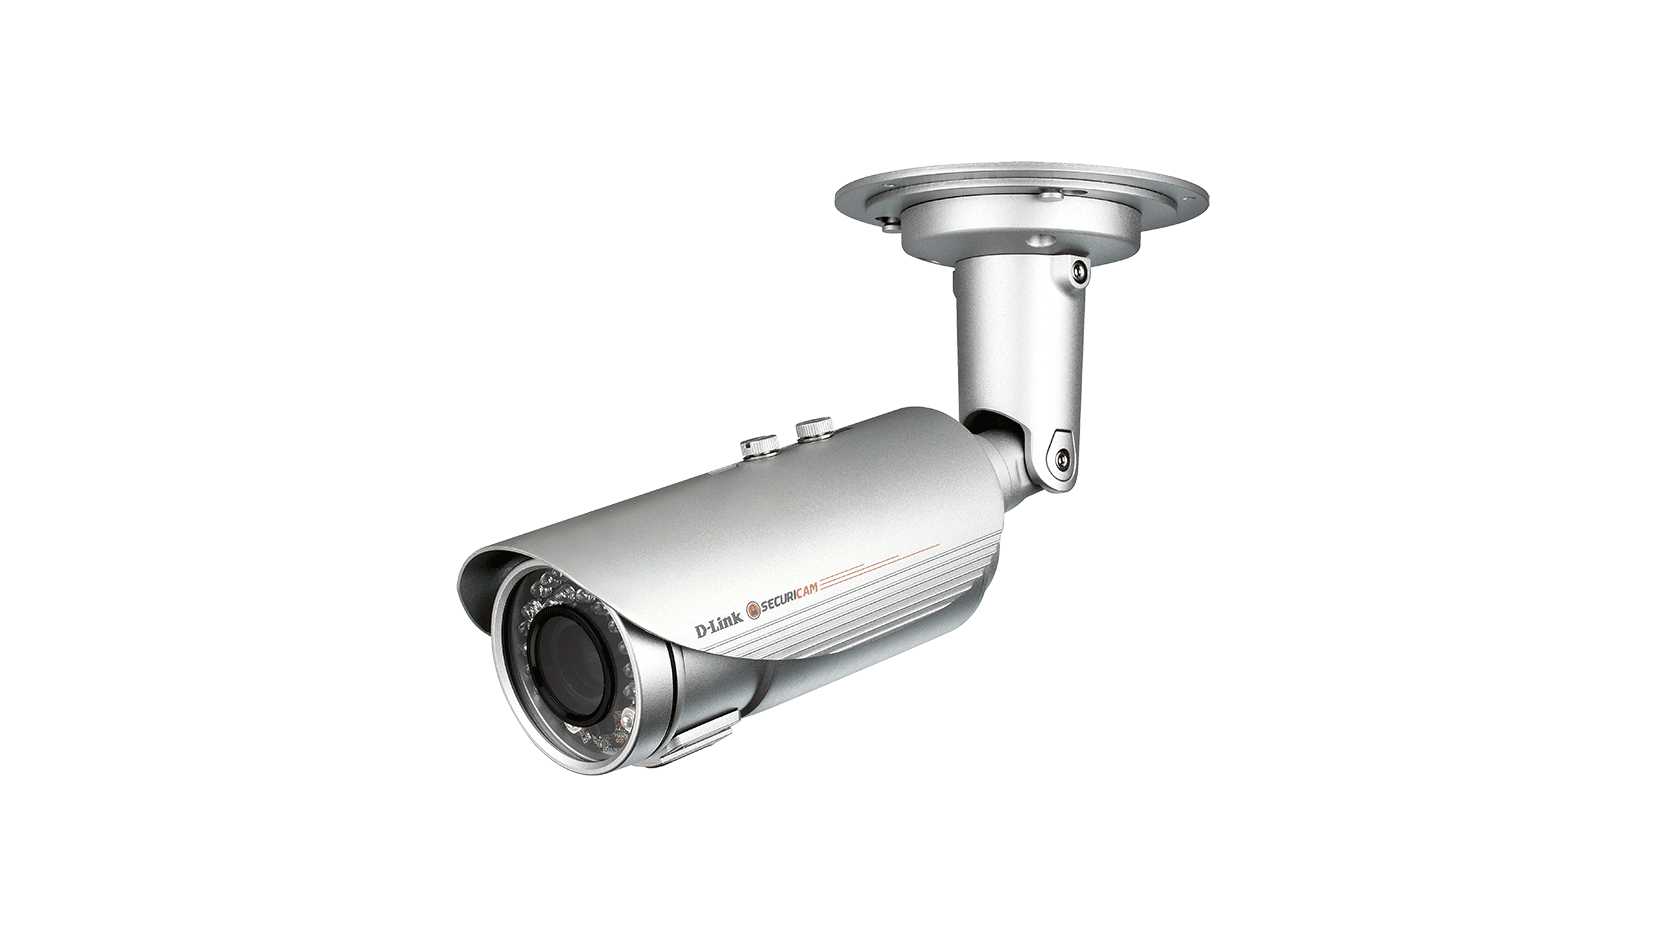 Camera De Surveillance Exterieur Live Dcs-7517 5 Megapixel Varifocal Outdoor Network Camera | D